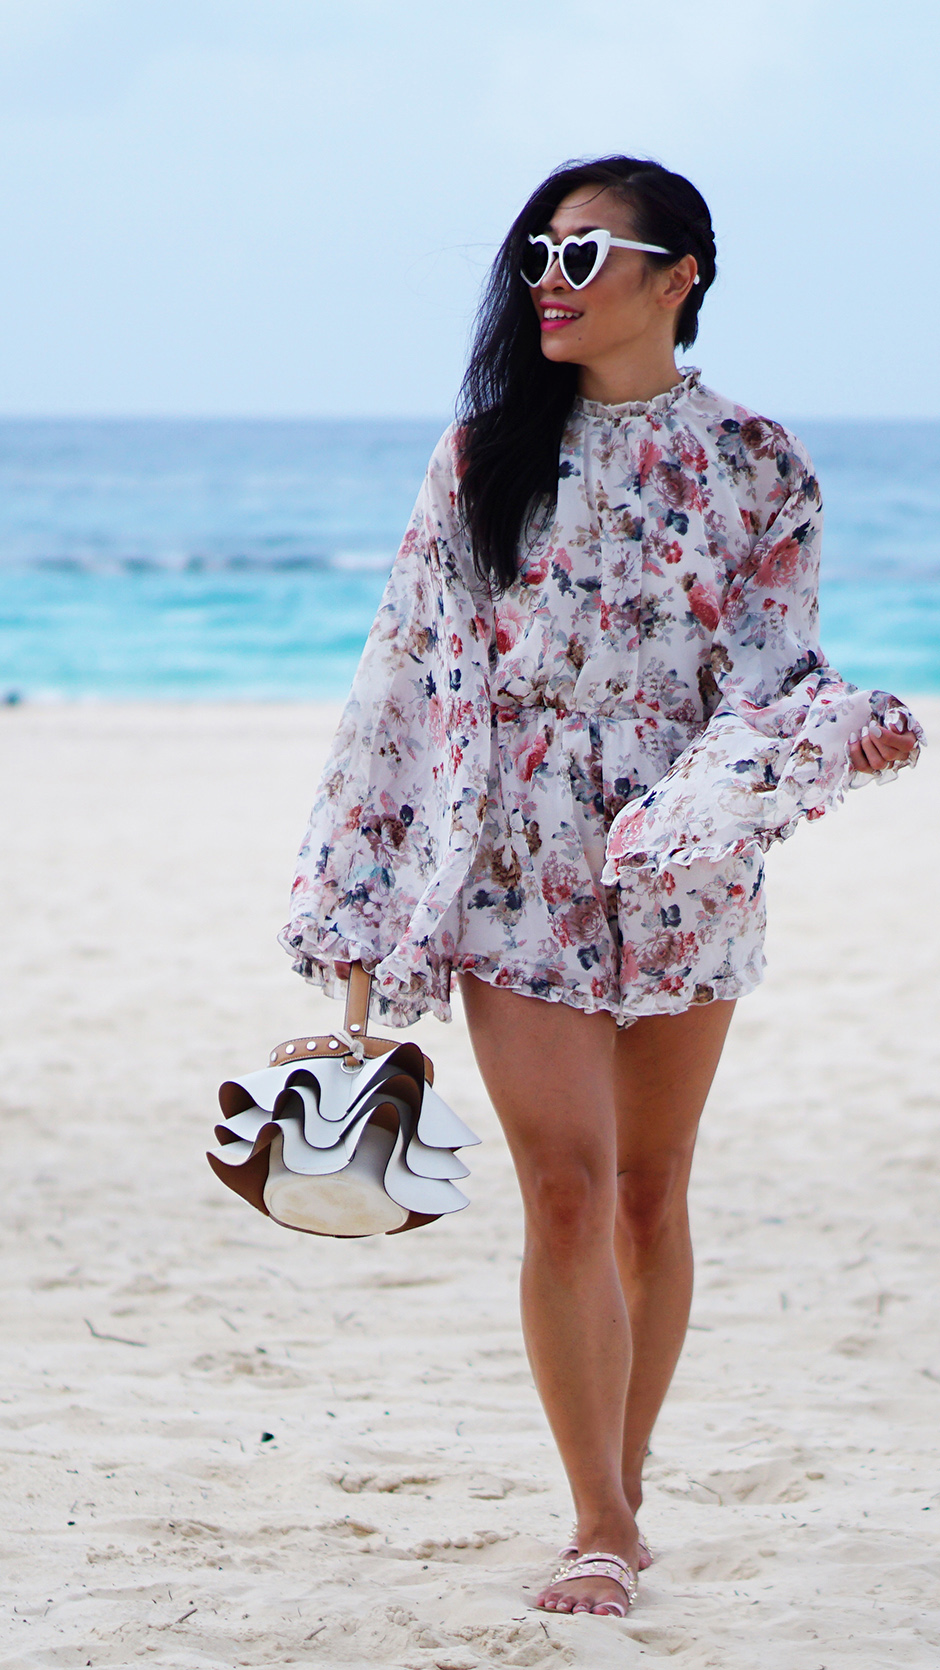 How to Travel More Often #outfitpost #stylepost #waderlust #resortwear #traveltips #traveladvice #travellingmore #savingtips #travelingtips #solotravel #couplestravel #shein #romper #floralromper #backlessromper #backlessfloral #backless #rufflebag #sunglasses #heartsunglasses